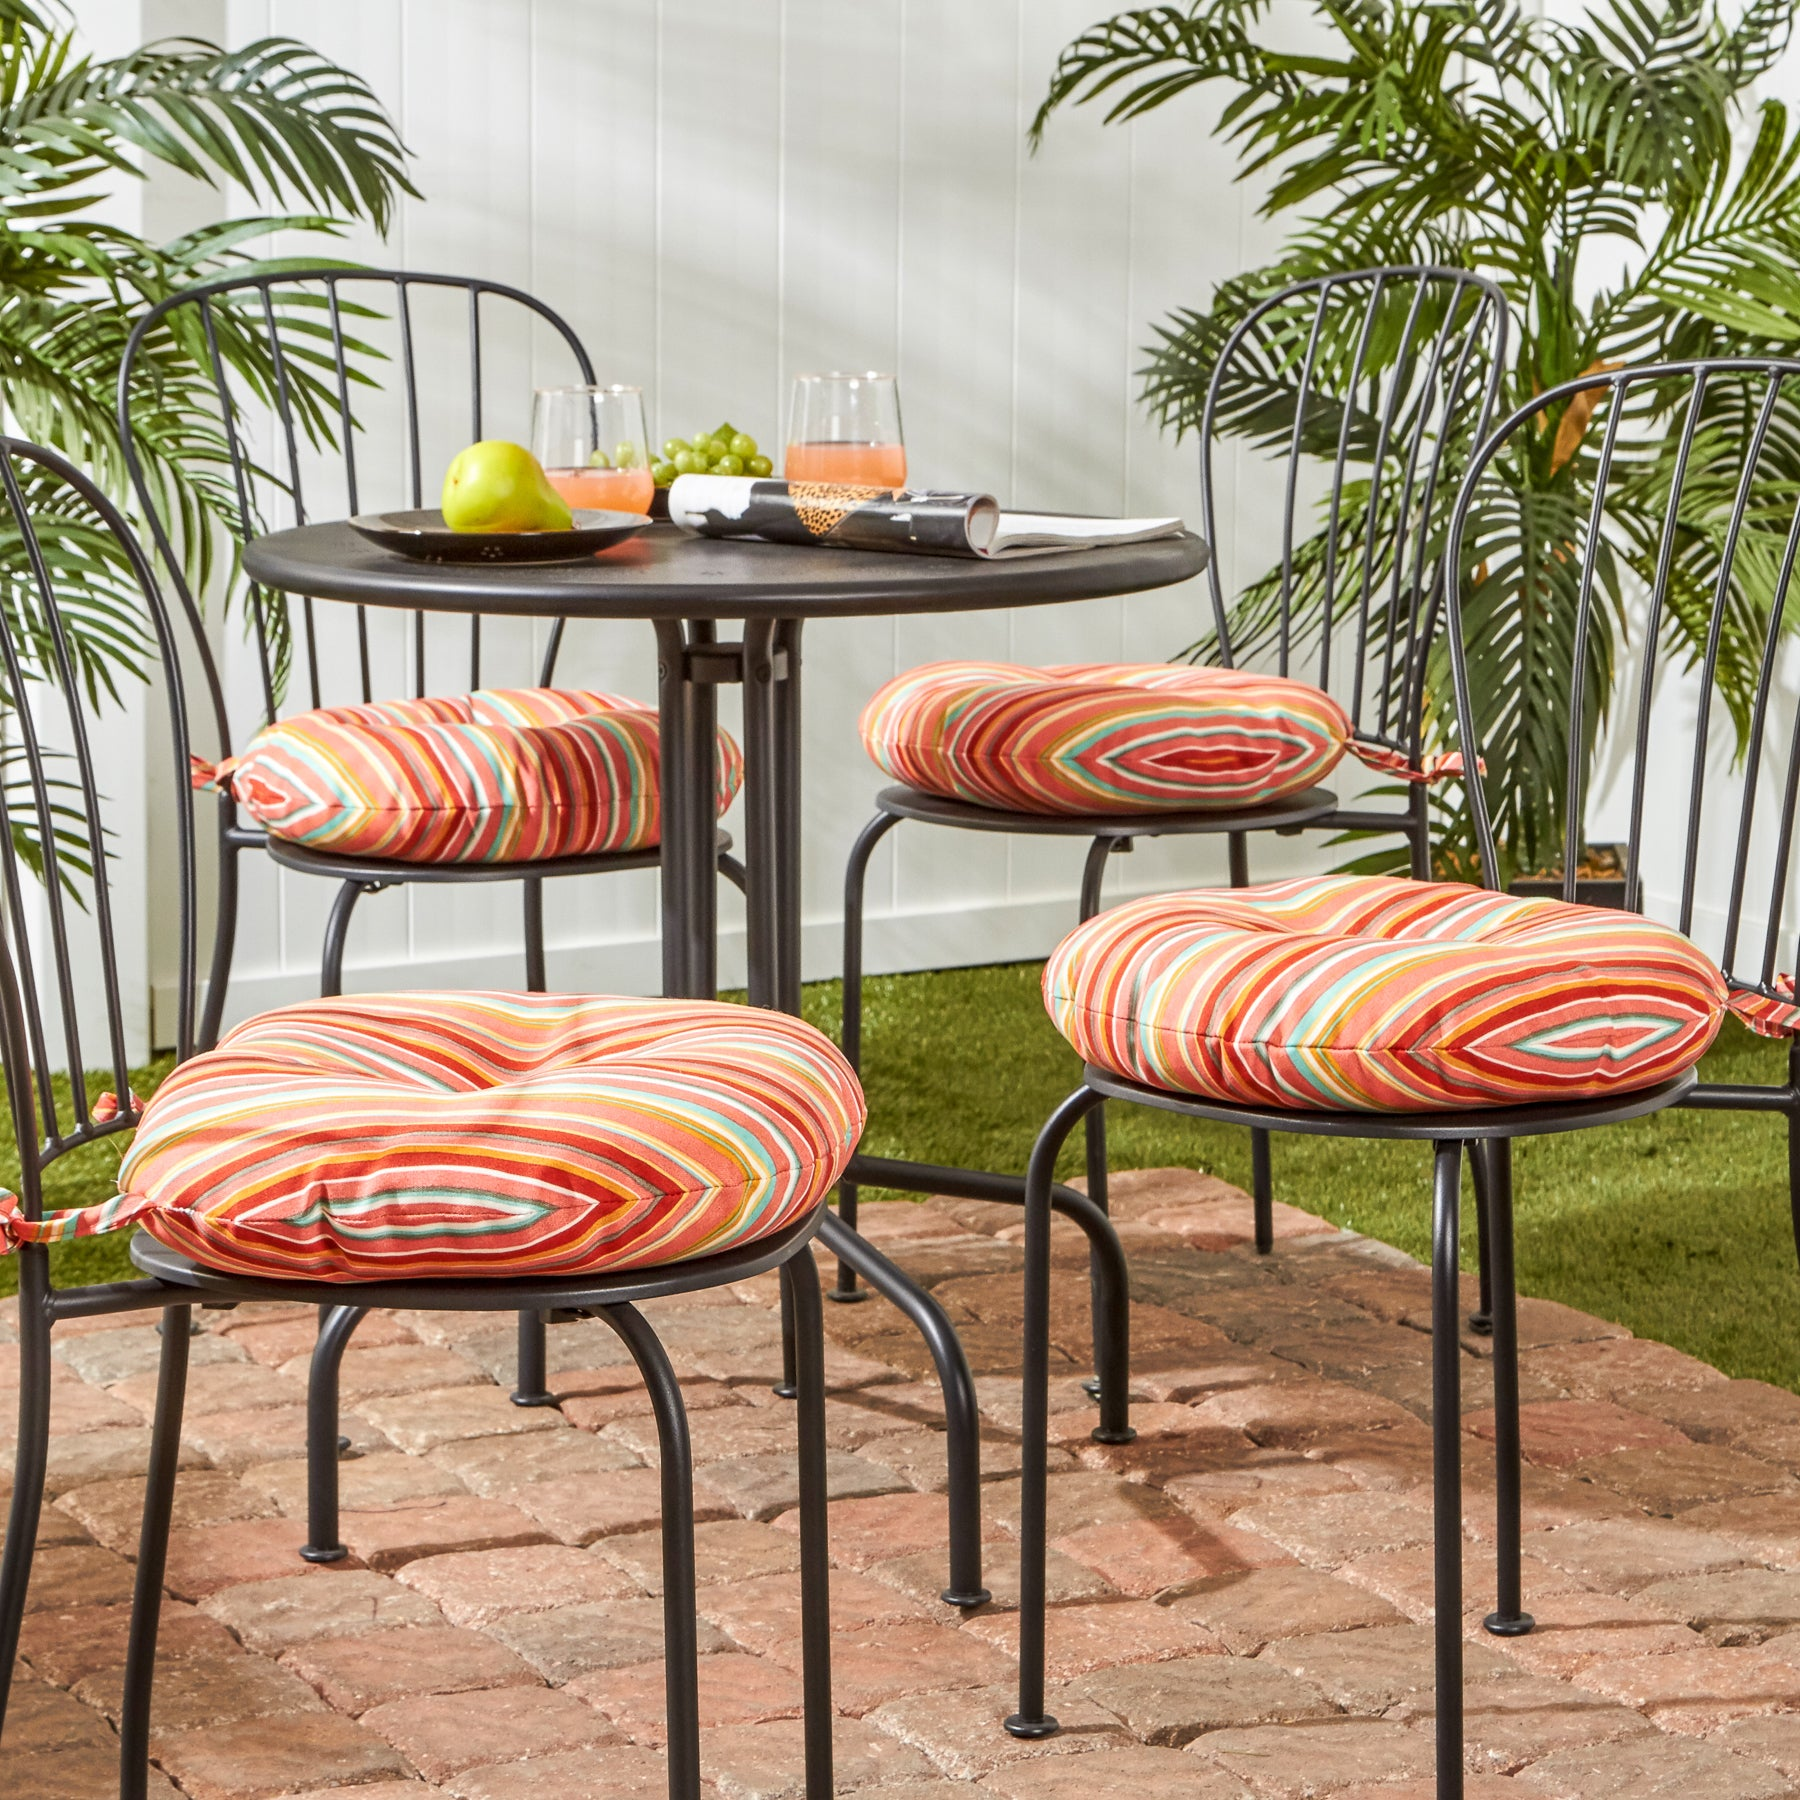 Havenside Home Colton 16 Inch Outdoor Round Stripe Bistro Chair Cushion Set Of 4